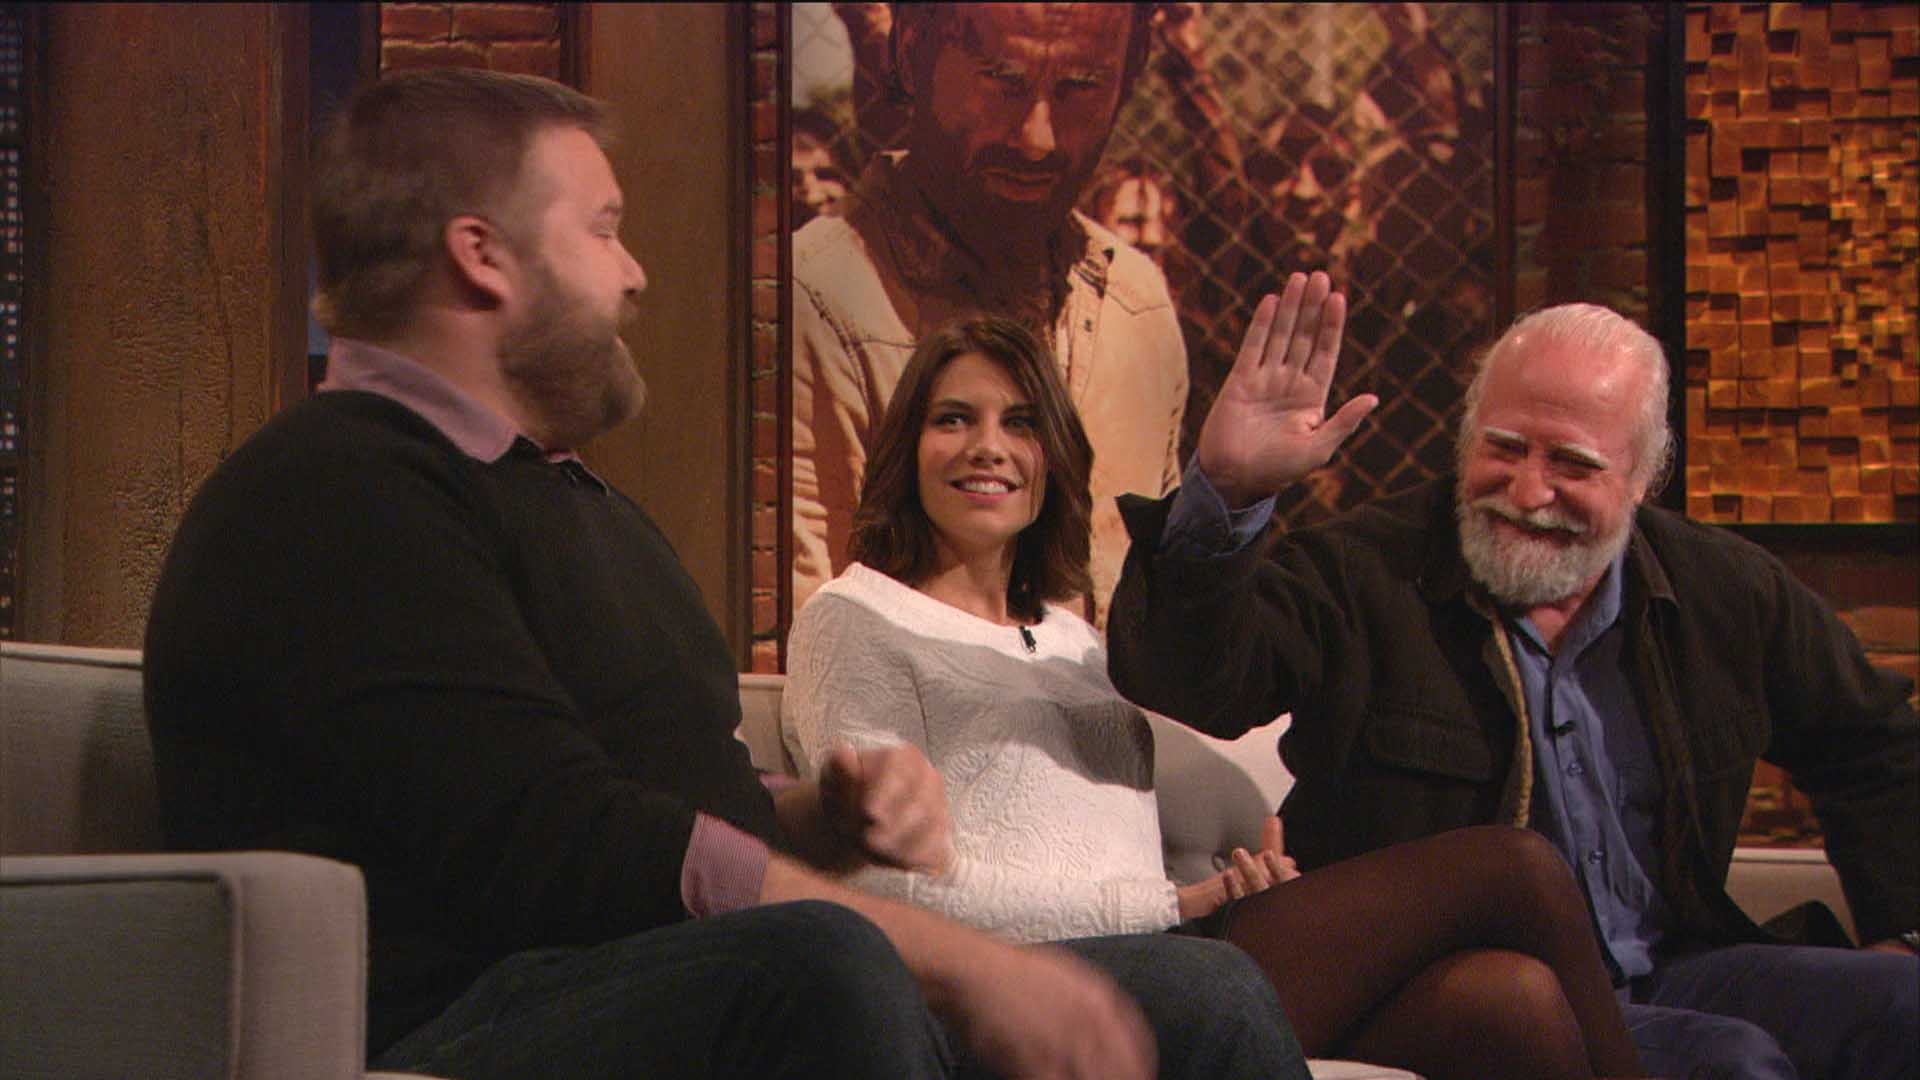 Highlights: Episode 408: Talking Dead: Robert Kirkman, Lauren Cohan, and Scott Wilson on Hershel